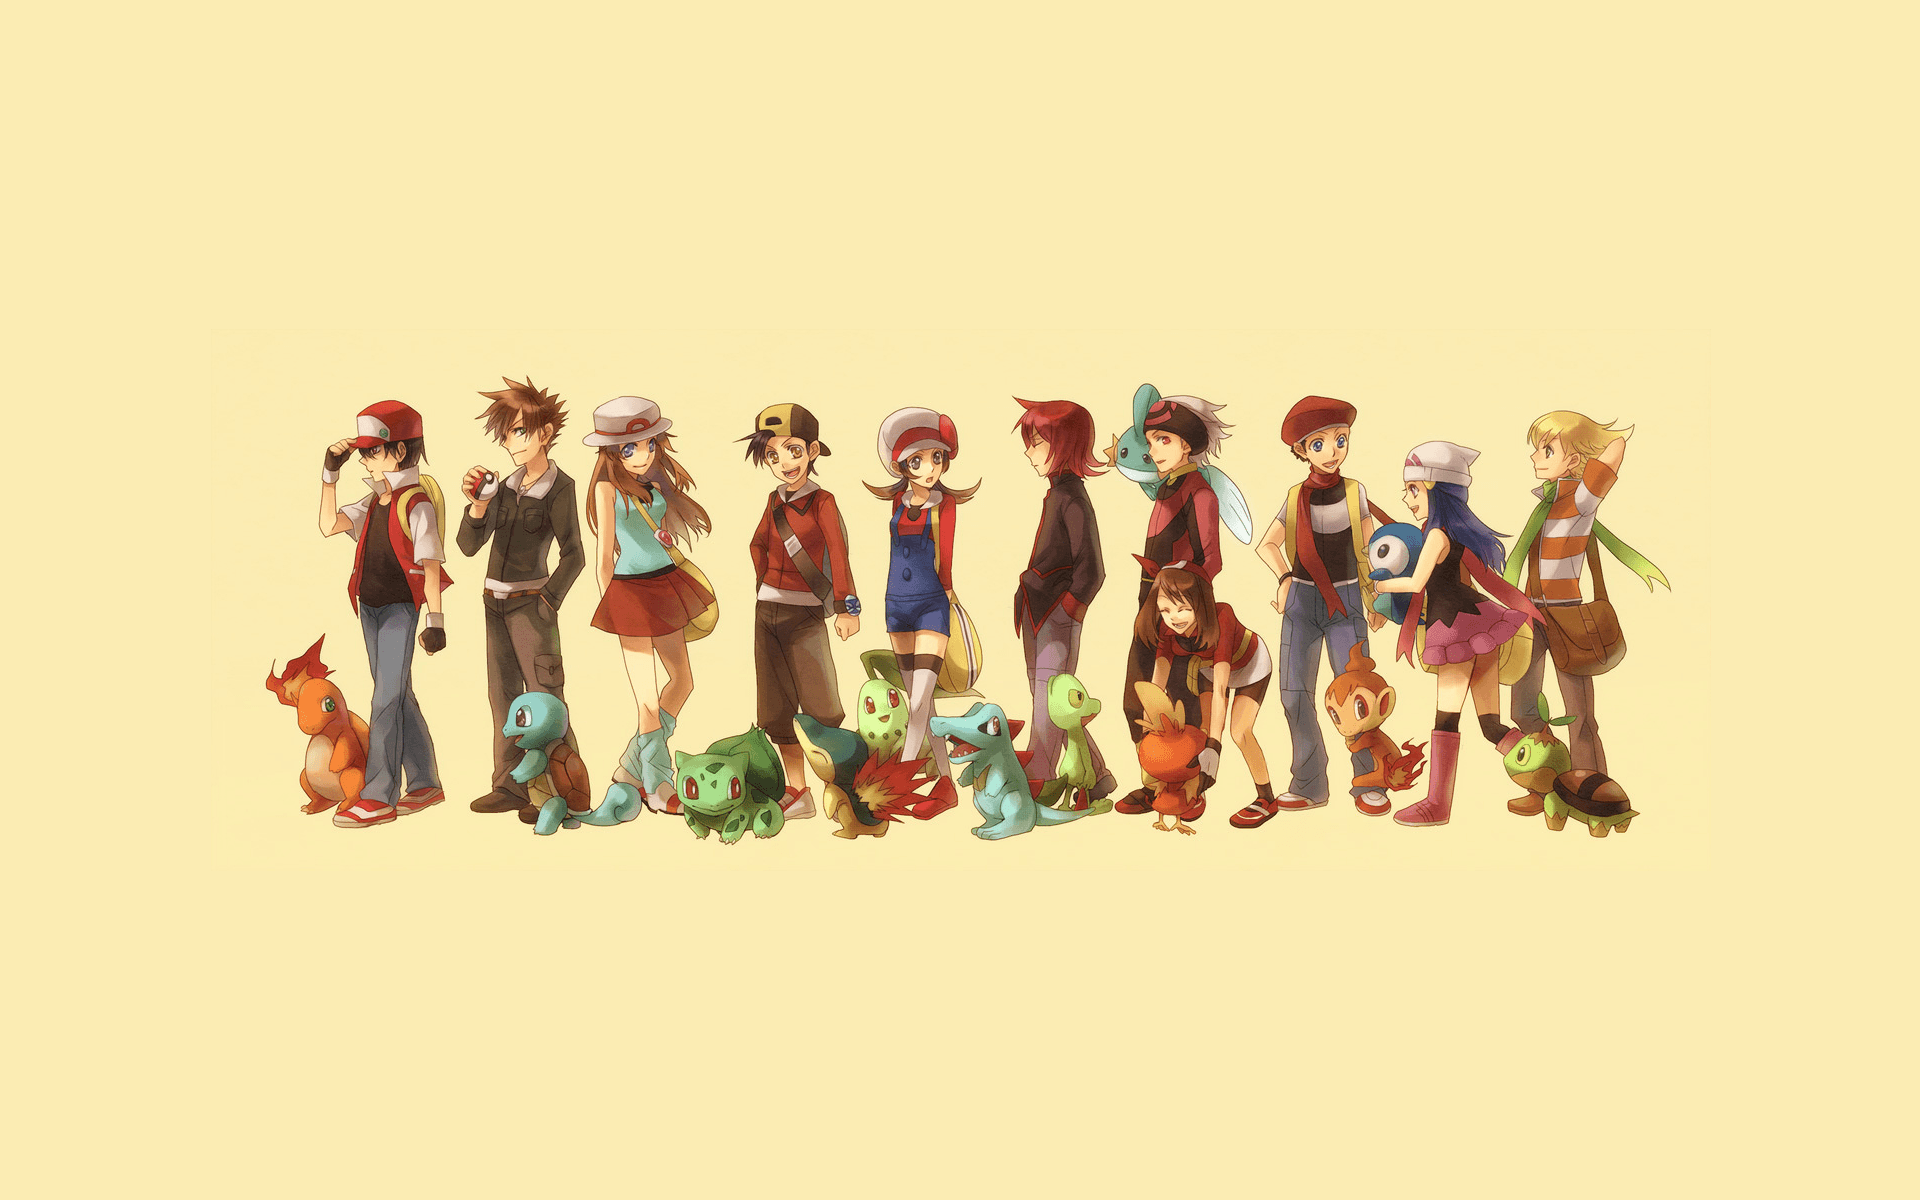 1920 x 1200 png 335kBRed